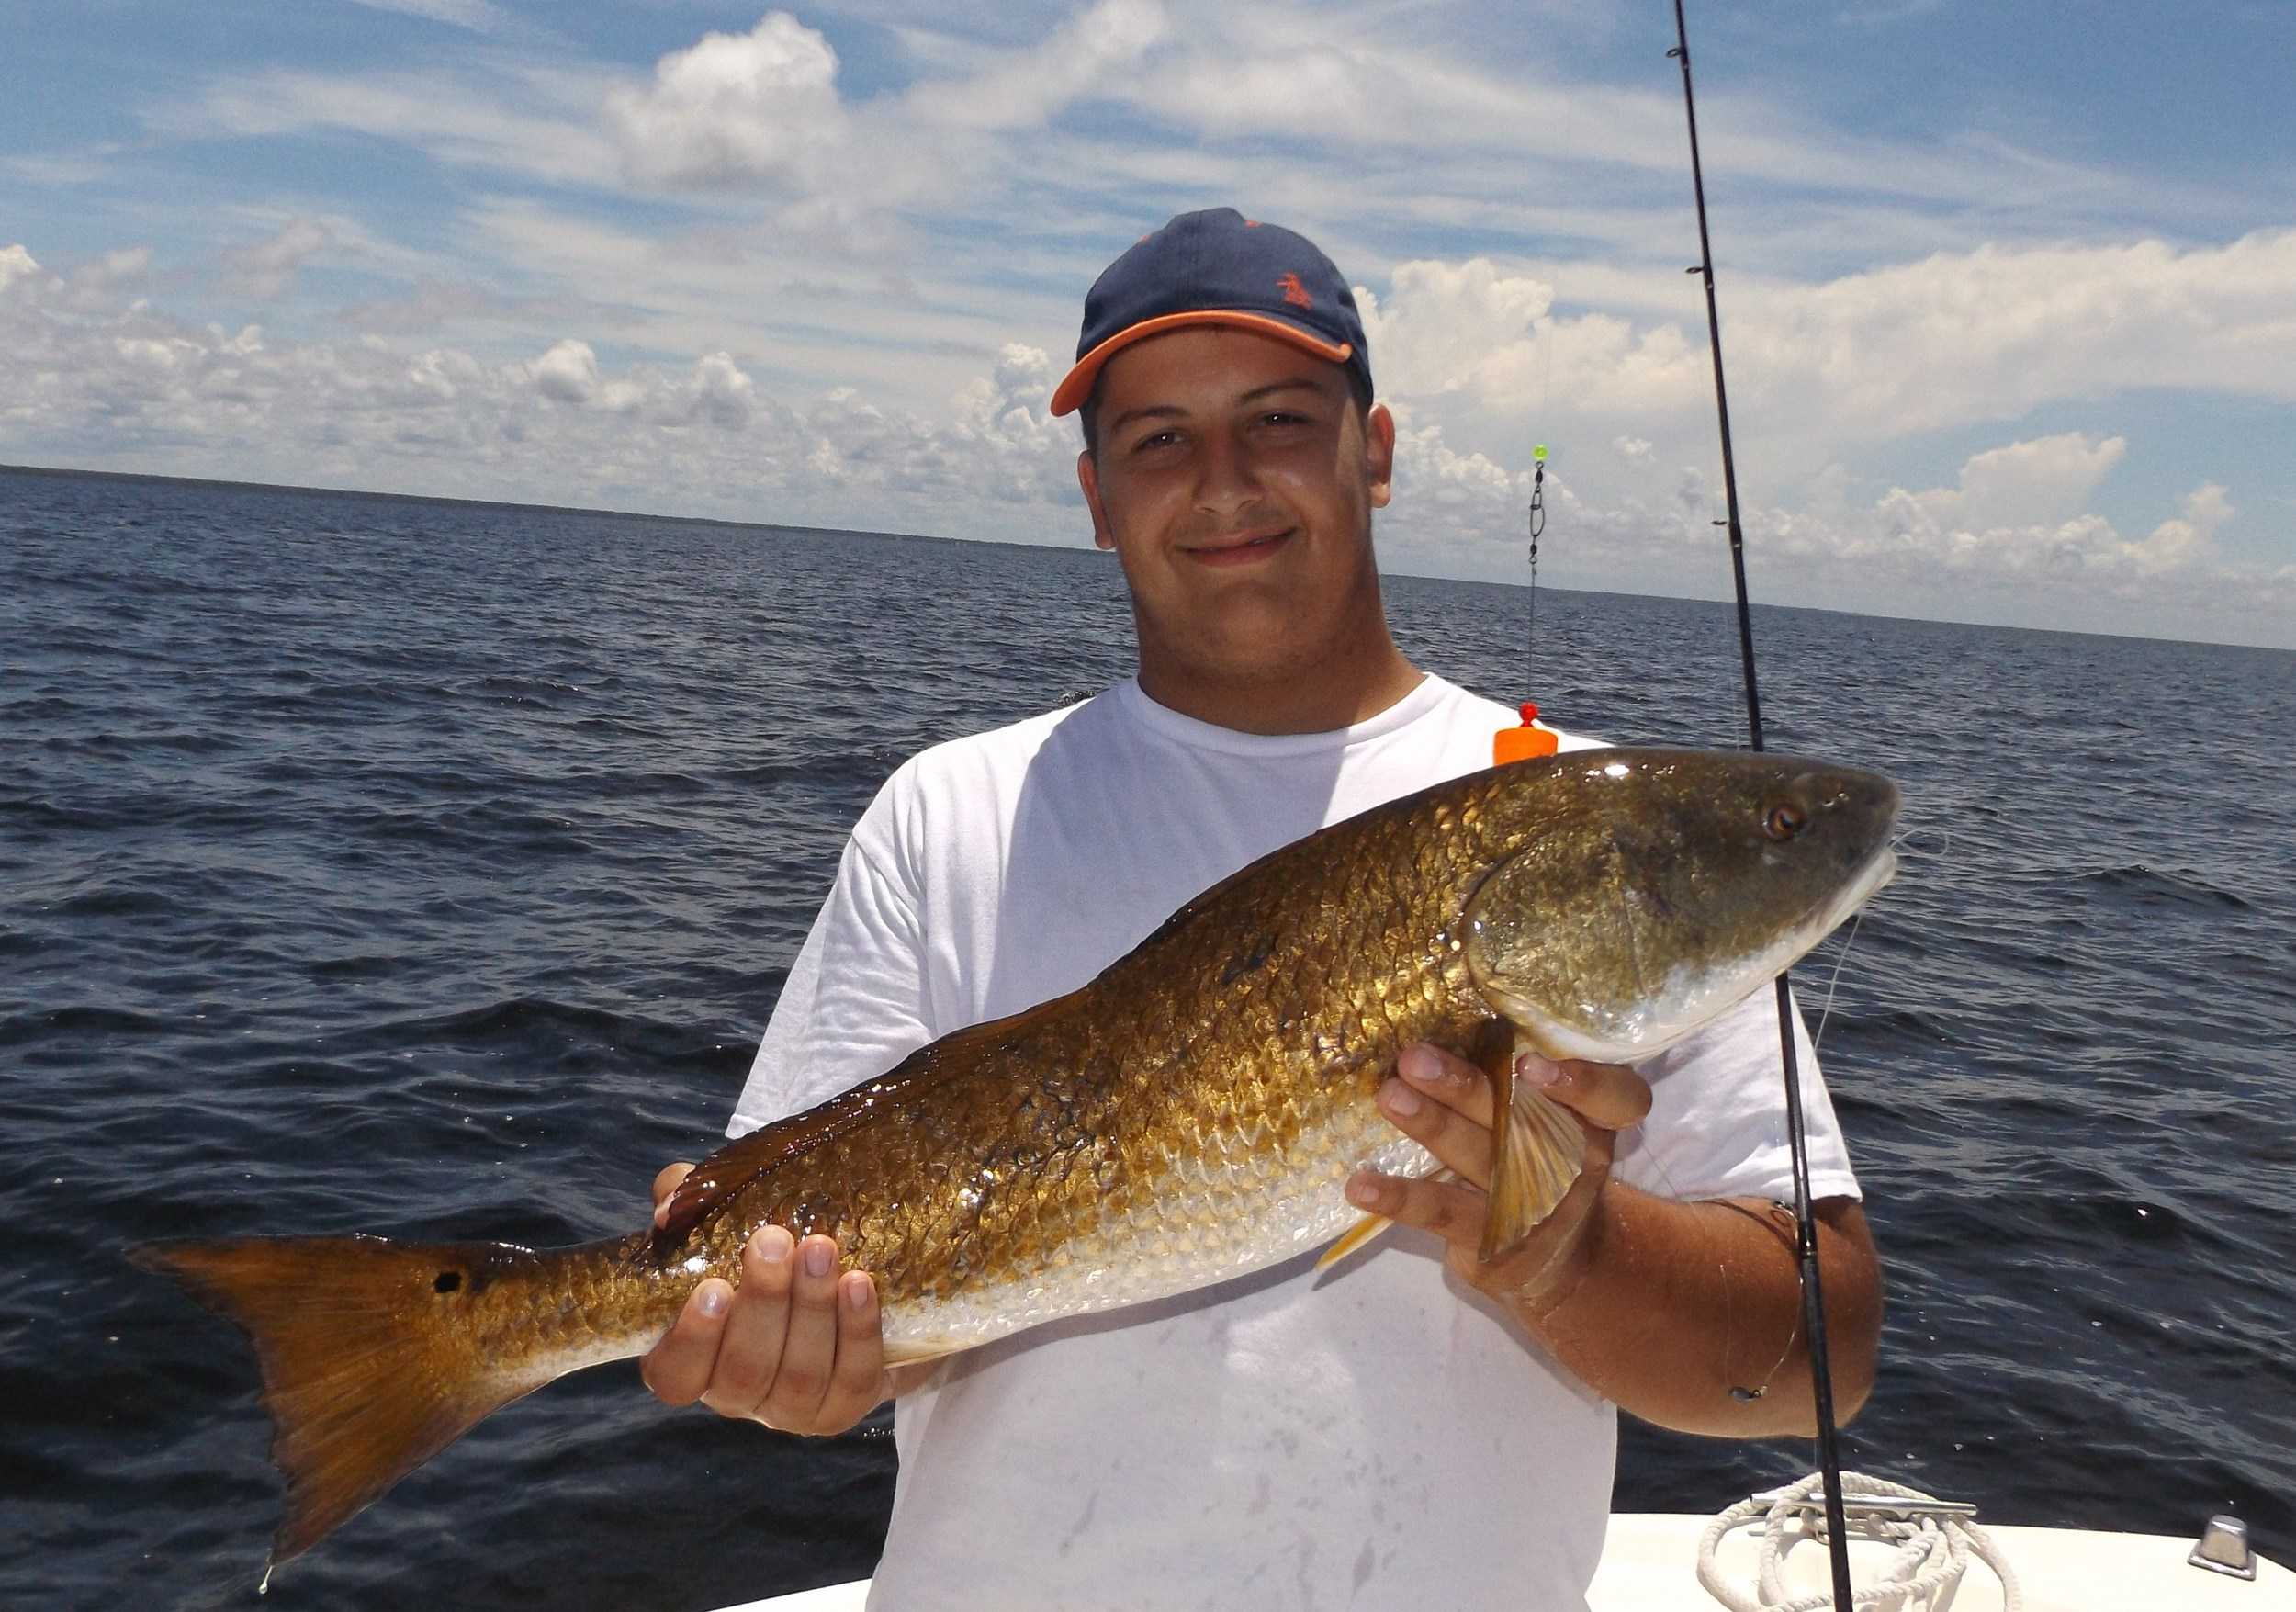 Bailey king of thomasville,ga. with his first-ever redfish